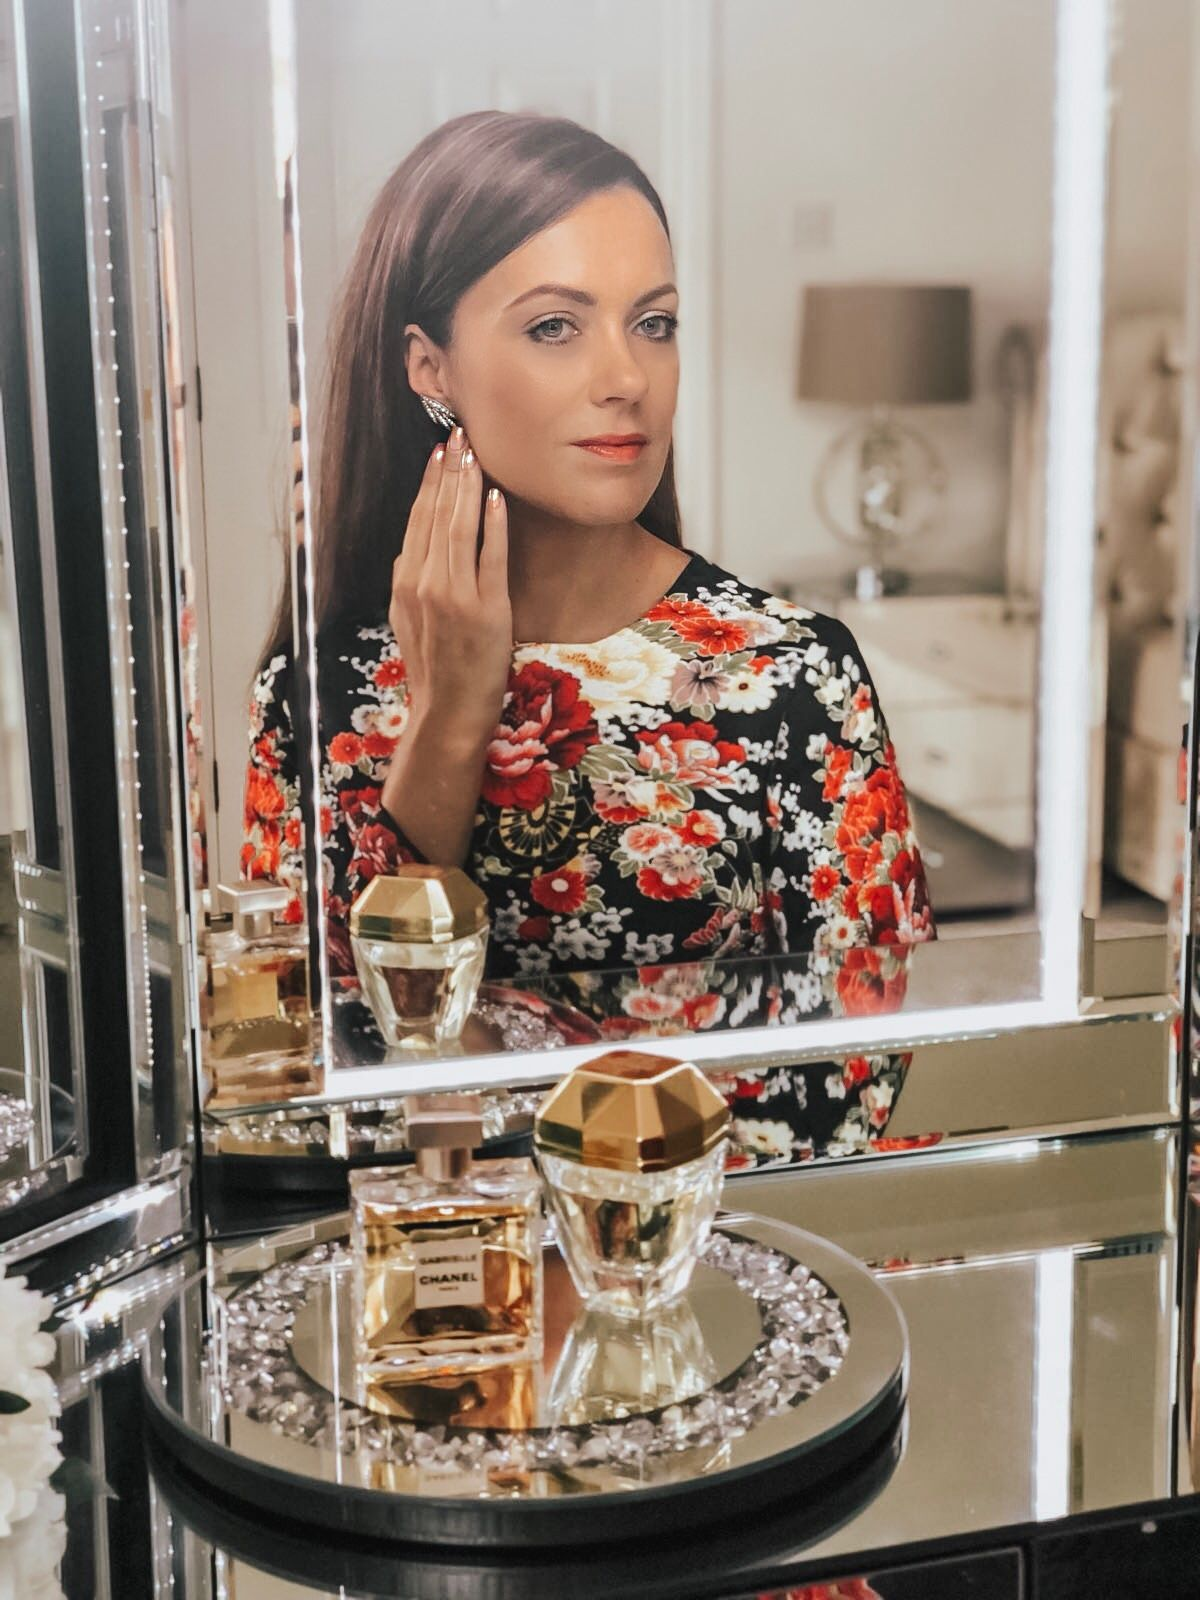 Elegant Duchess Fashion Comino Couture Floral Print Long Sleeve Dress   Happiness Boutique Blooming Stud Earrings